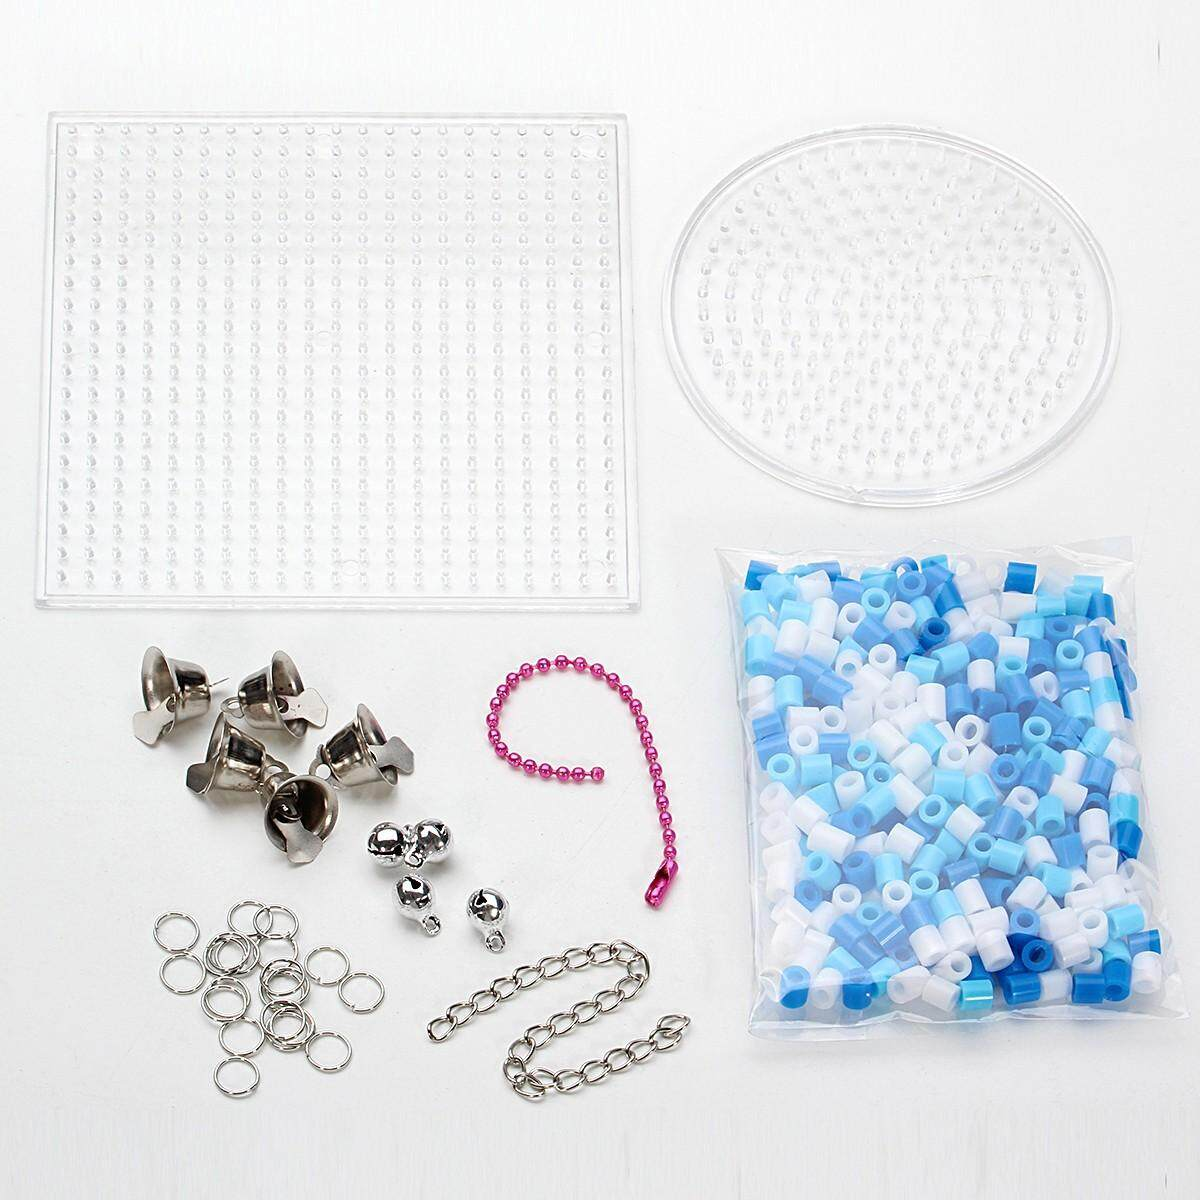 Diy Dream Catcher Windbell With 5mm Fuse Beads Toy For Over 3 Years Children Blue And White By Glimmer.